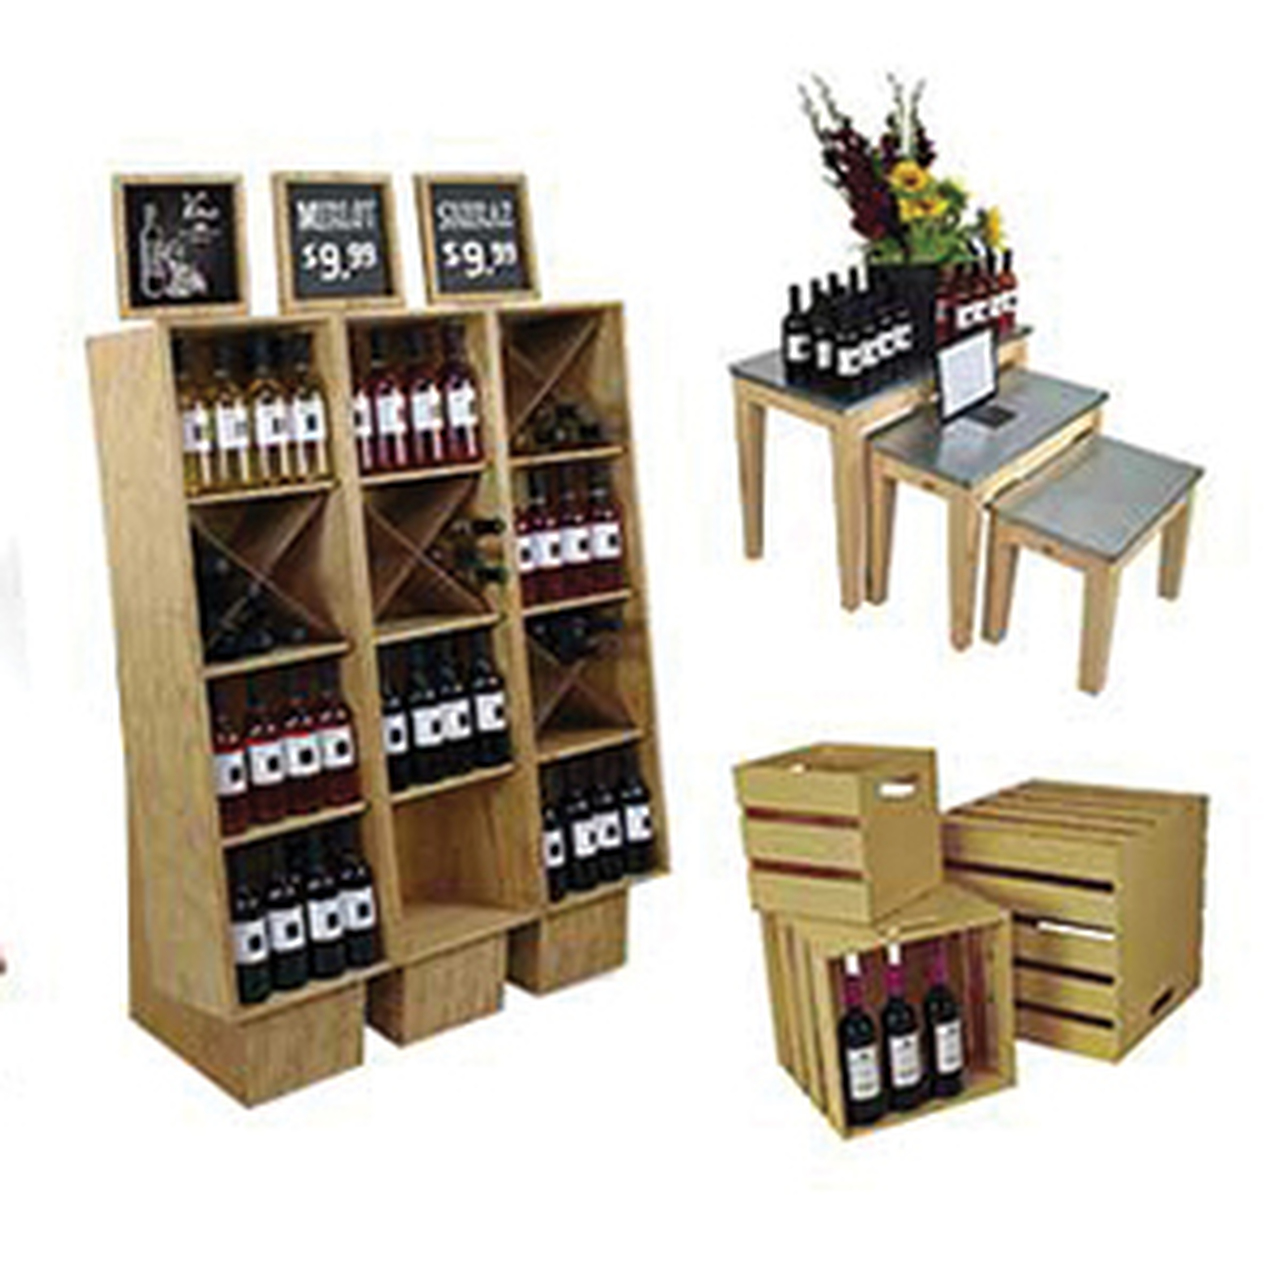 liquor-store-displays